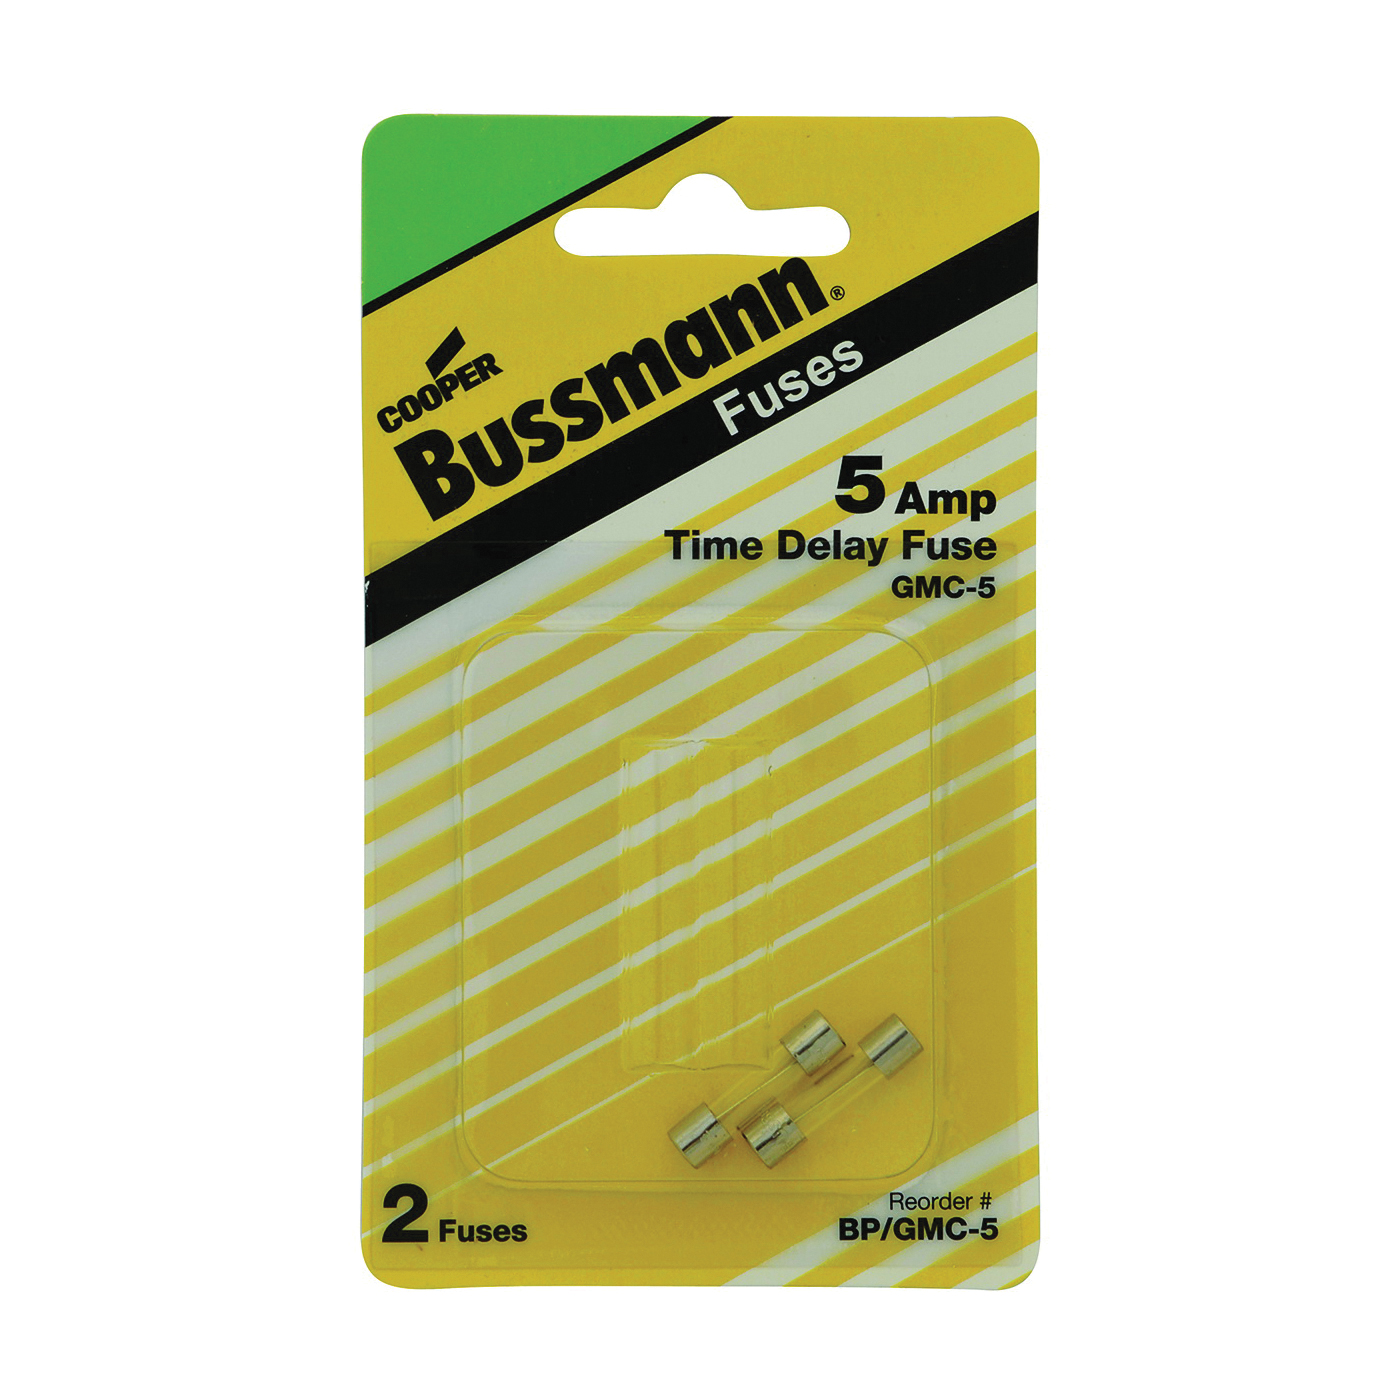 Picture of Bussmann BP/GMC-5 Time-Delay Fuse, 5 A, 125 V, 10 kA Interrupt, Glass Body